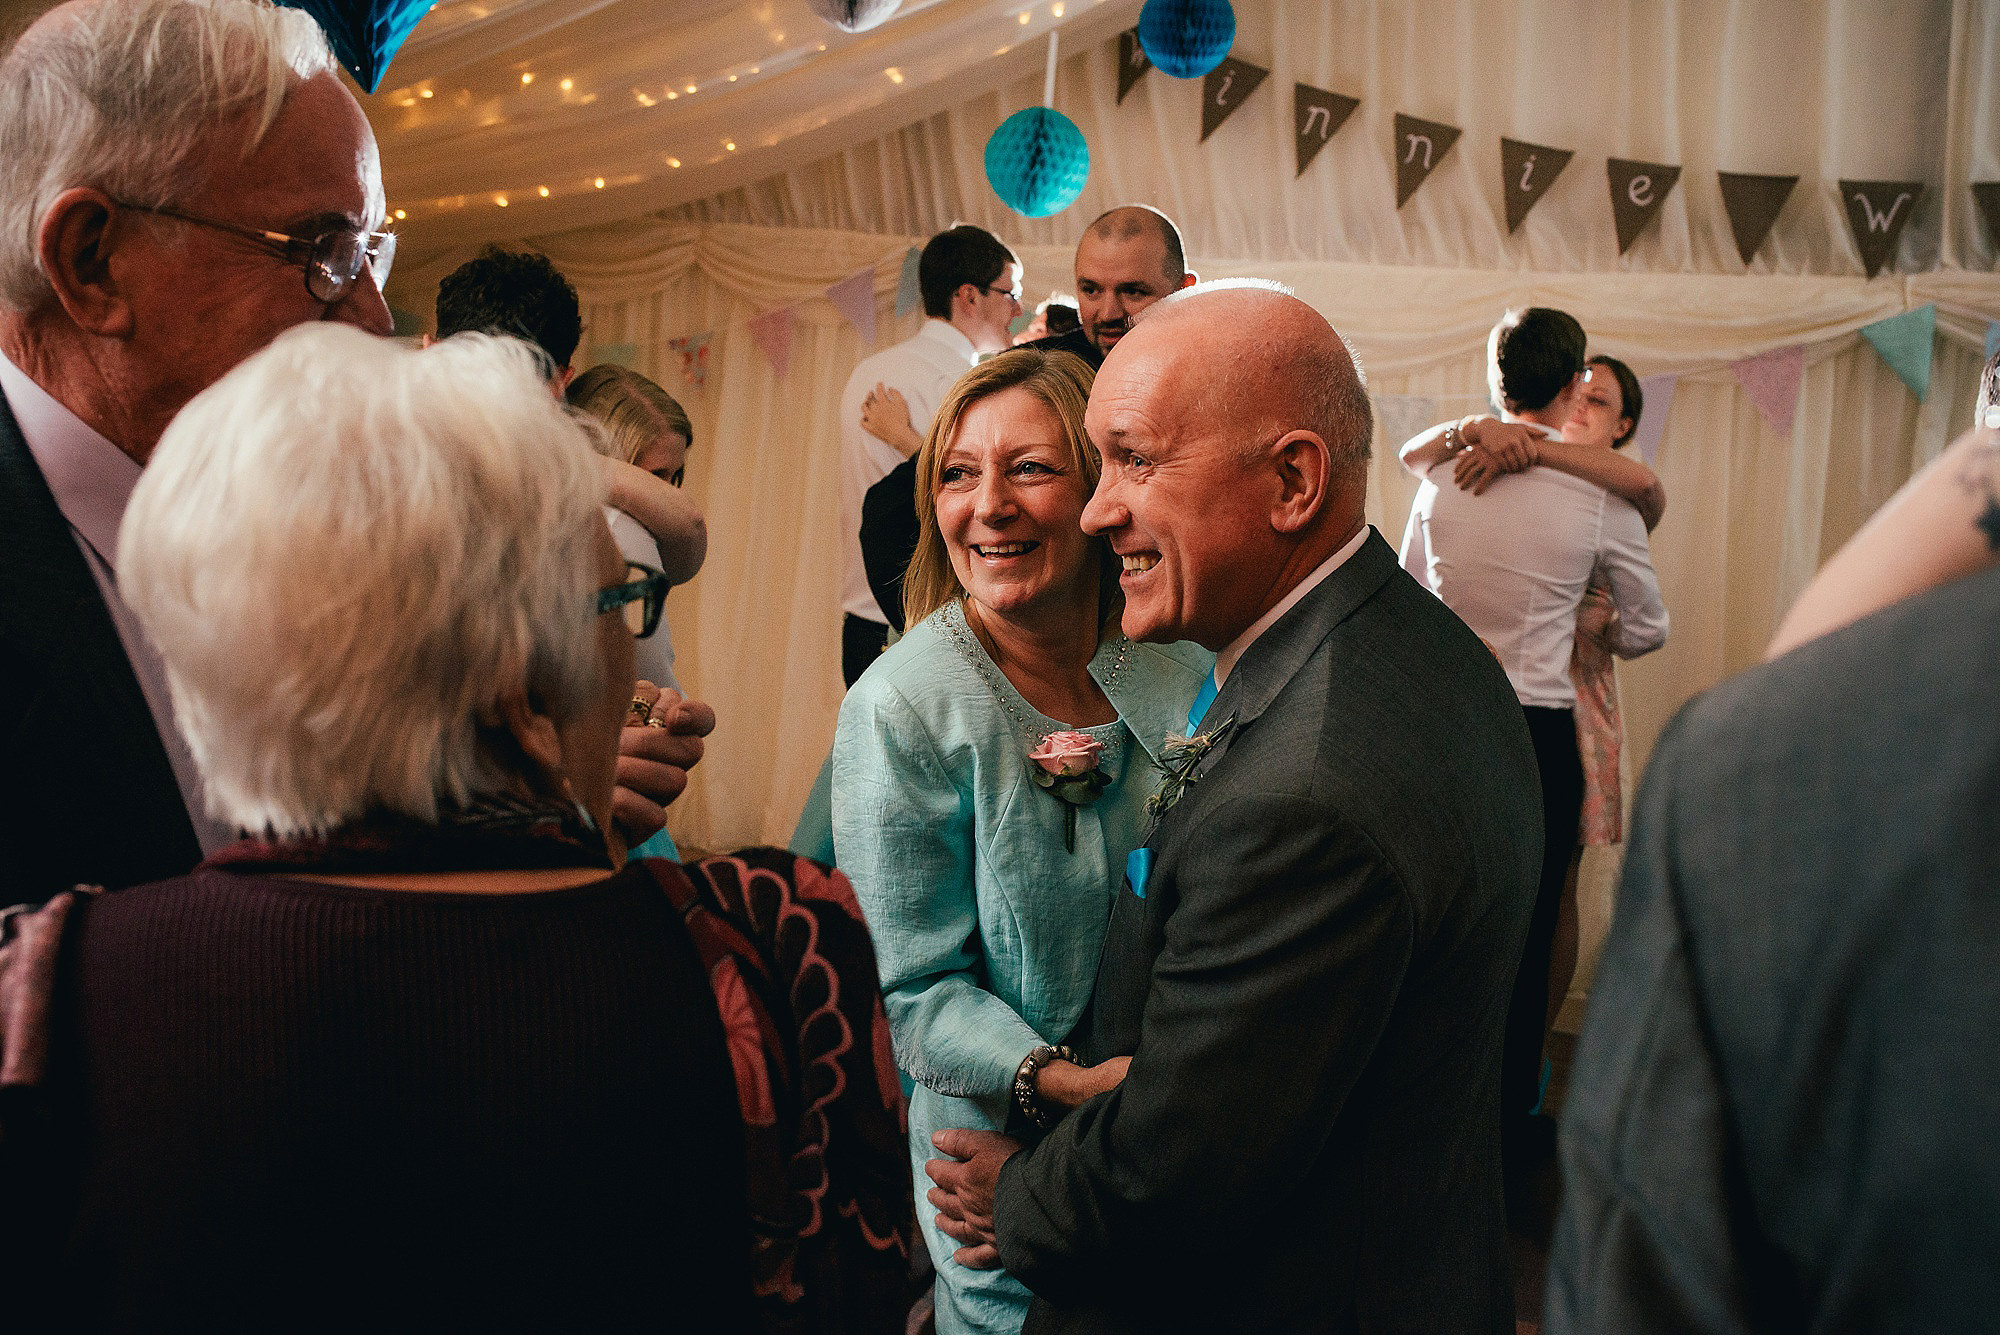 parents dancing at wedding